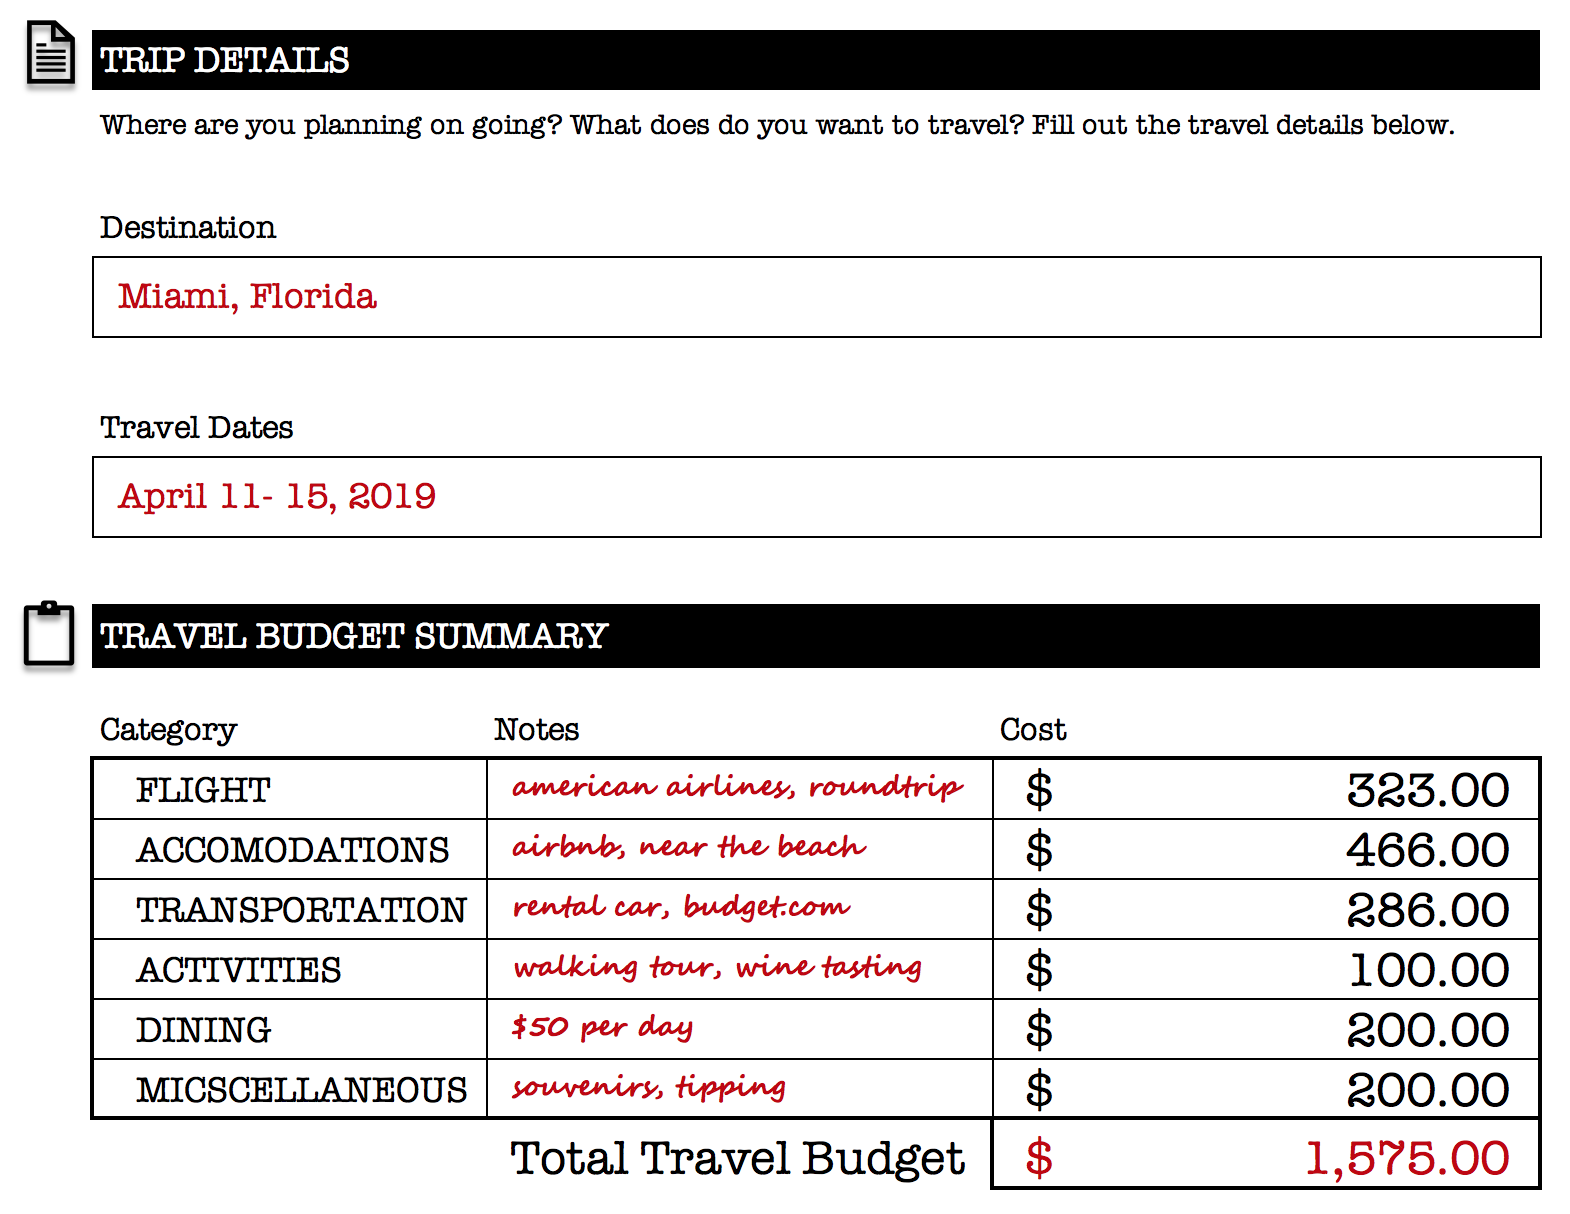 Travel Budget & Details - Simple Travel Budget